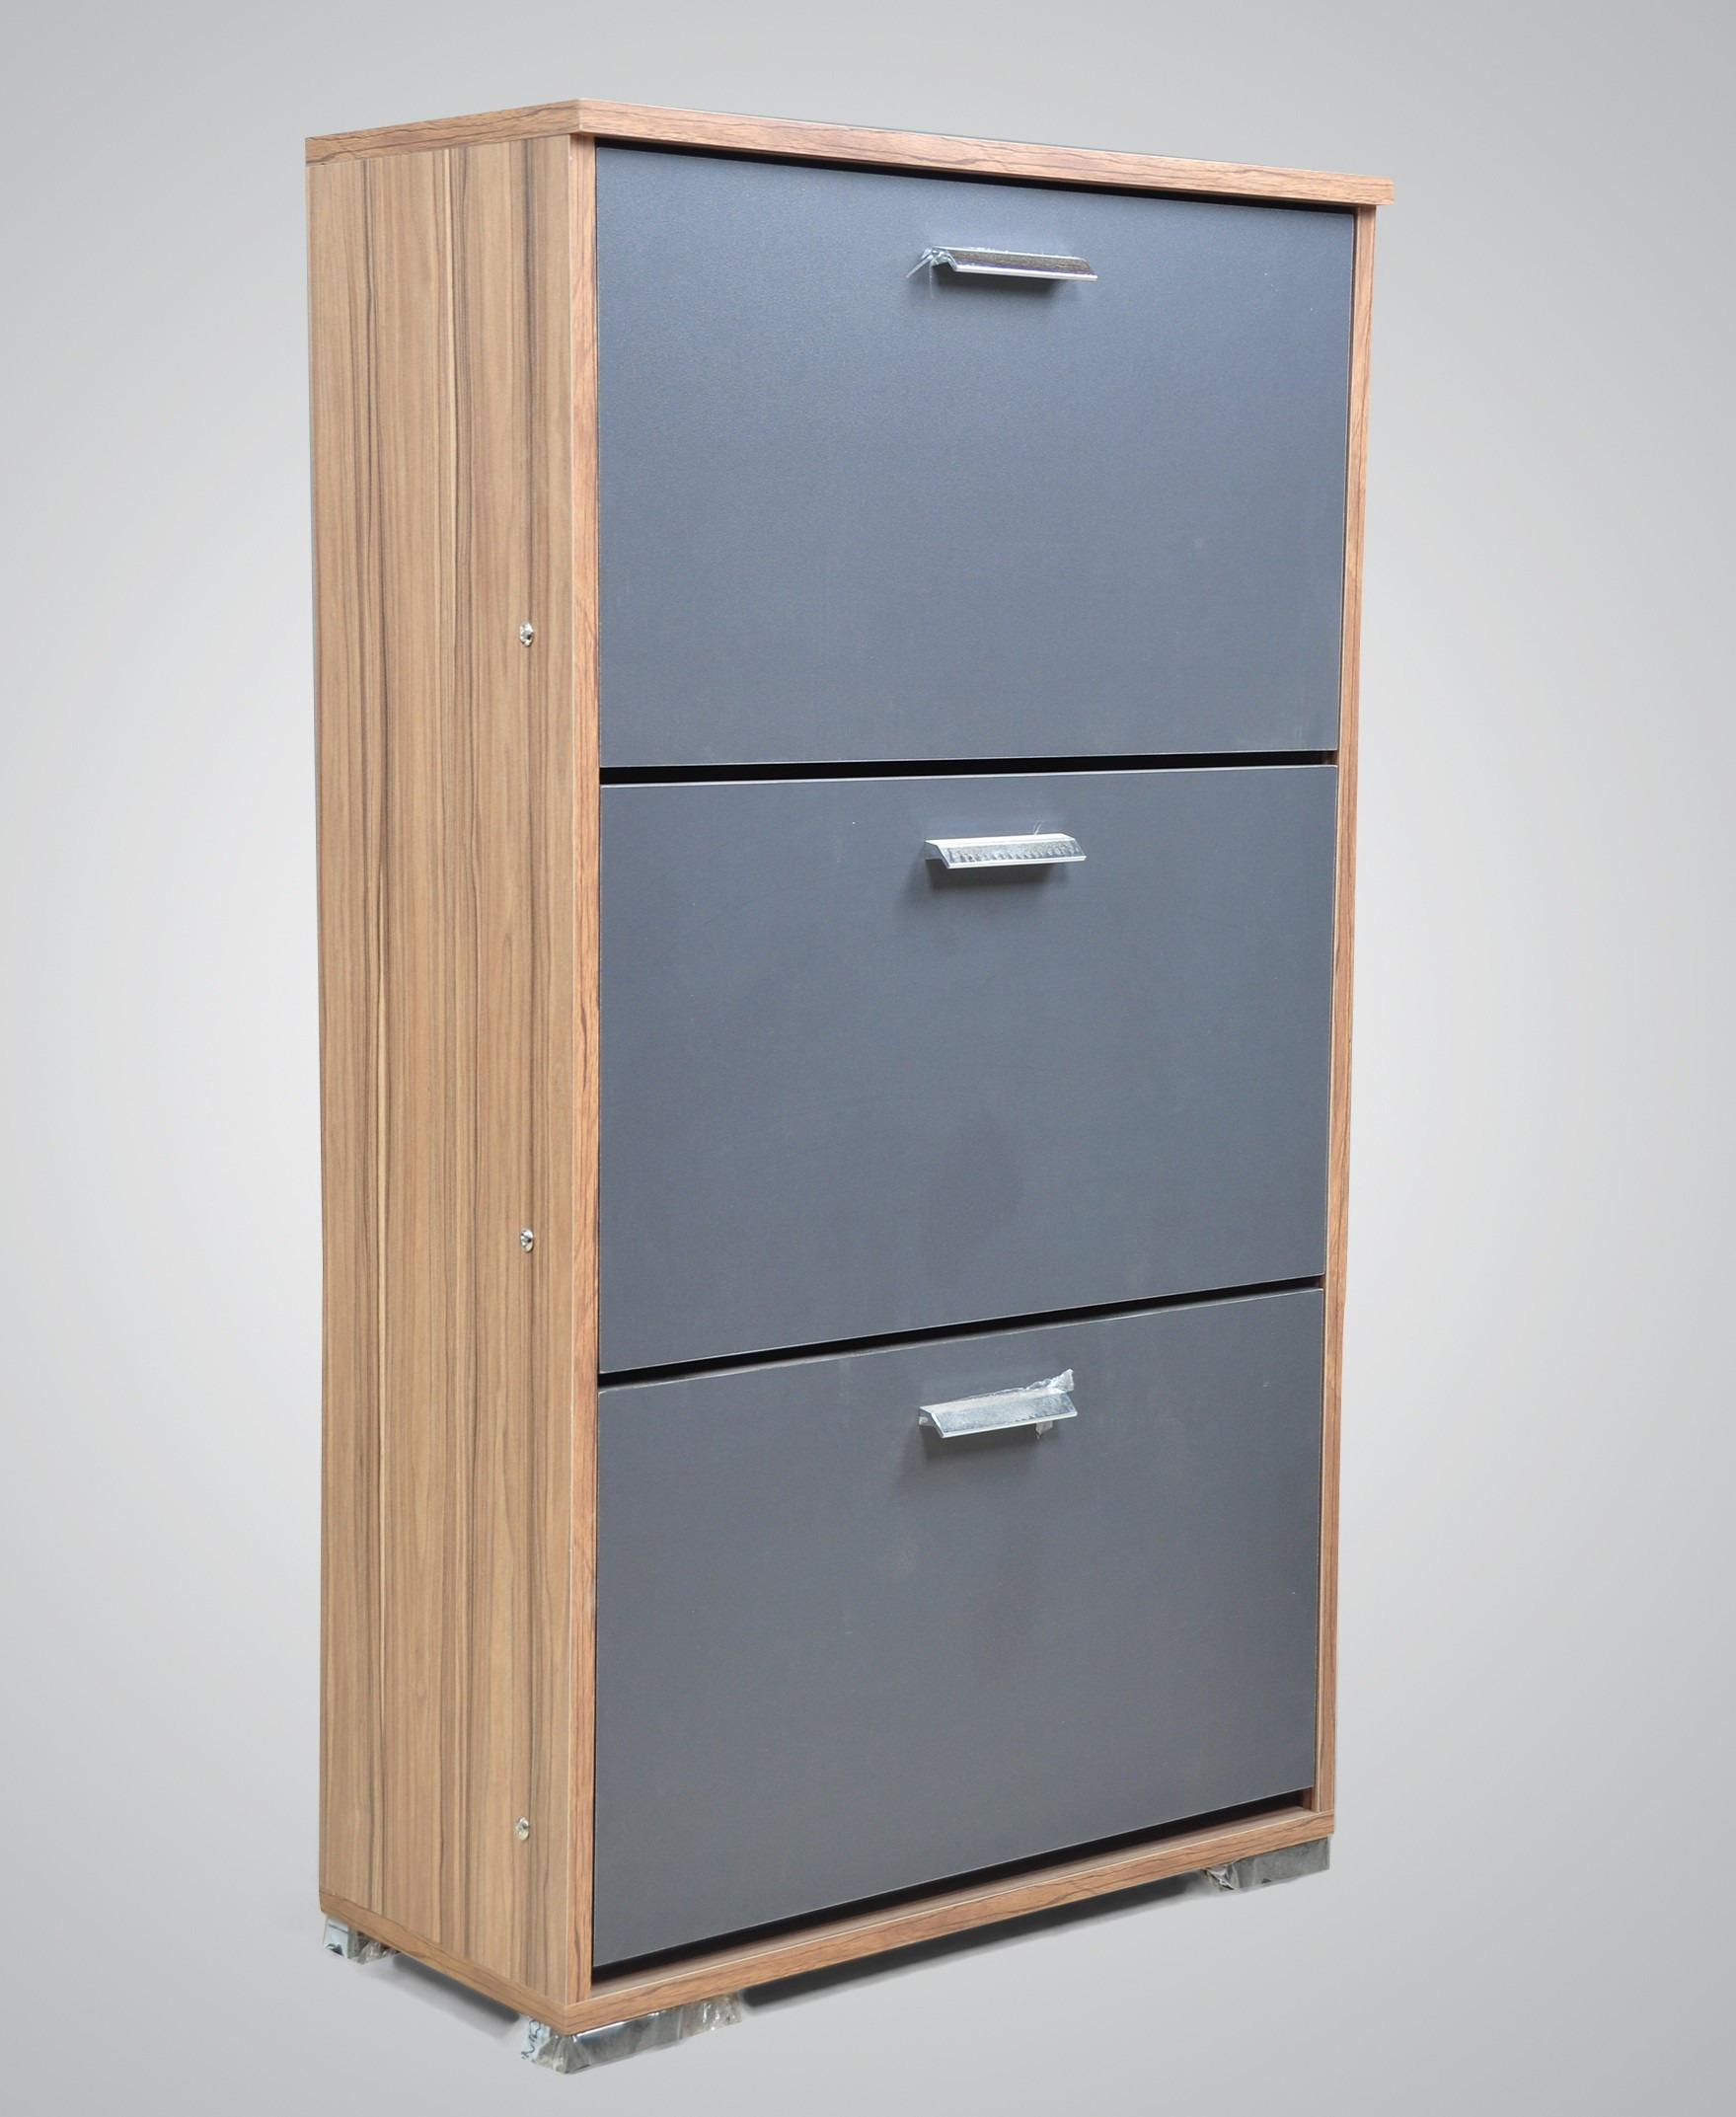 Small Cabinet with Doors Awesome Wood & More Small Shoe Cabinet 3 Doors 63 30 Cm Hazel Sc 3d S H